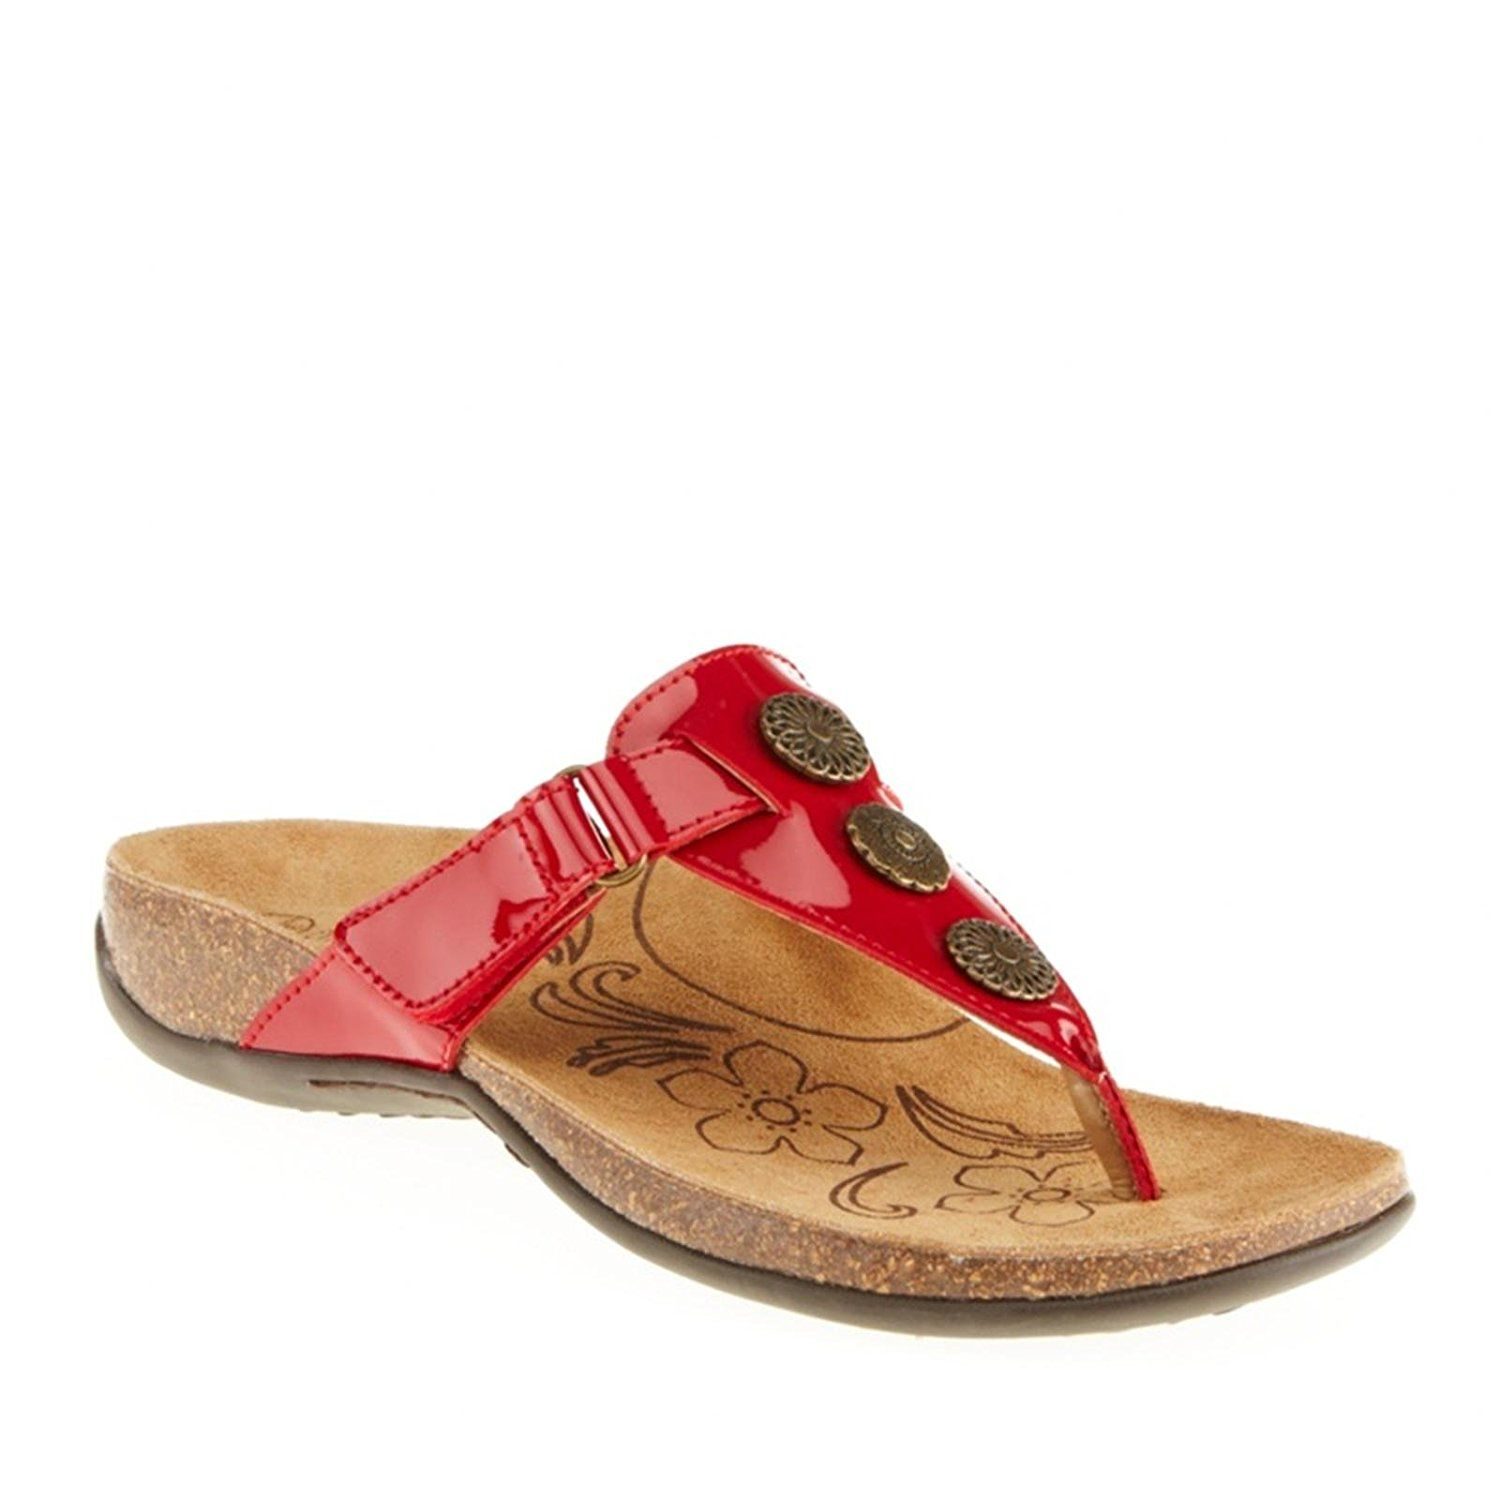 7e47fa3692 Orthaheel Cecilia Women's Thong Sandal >>> To view further for this item,  visit